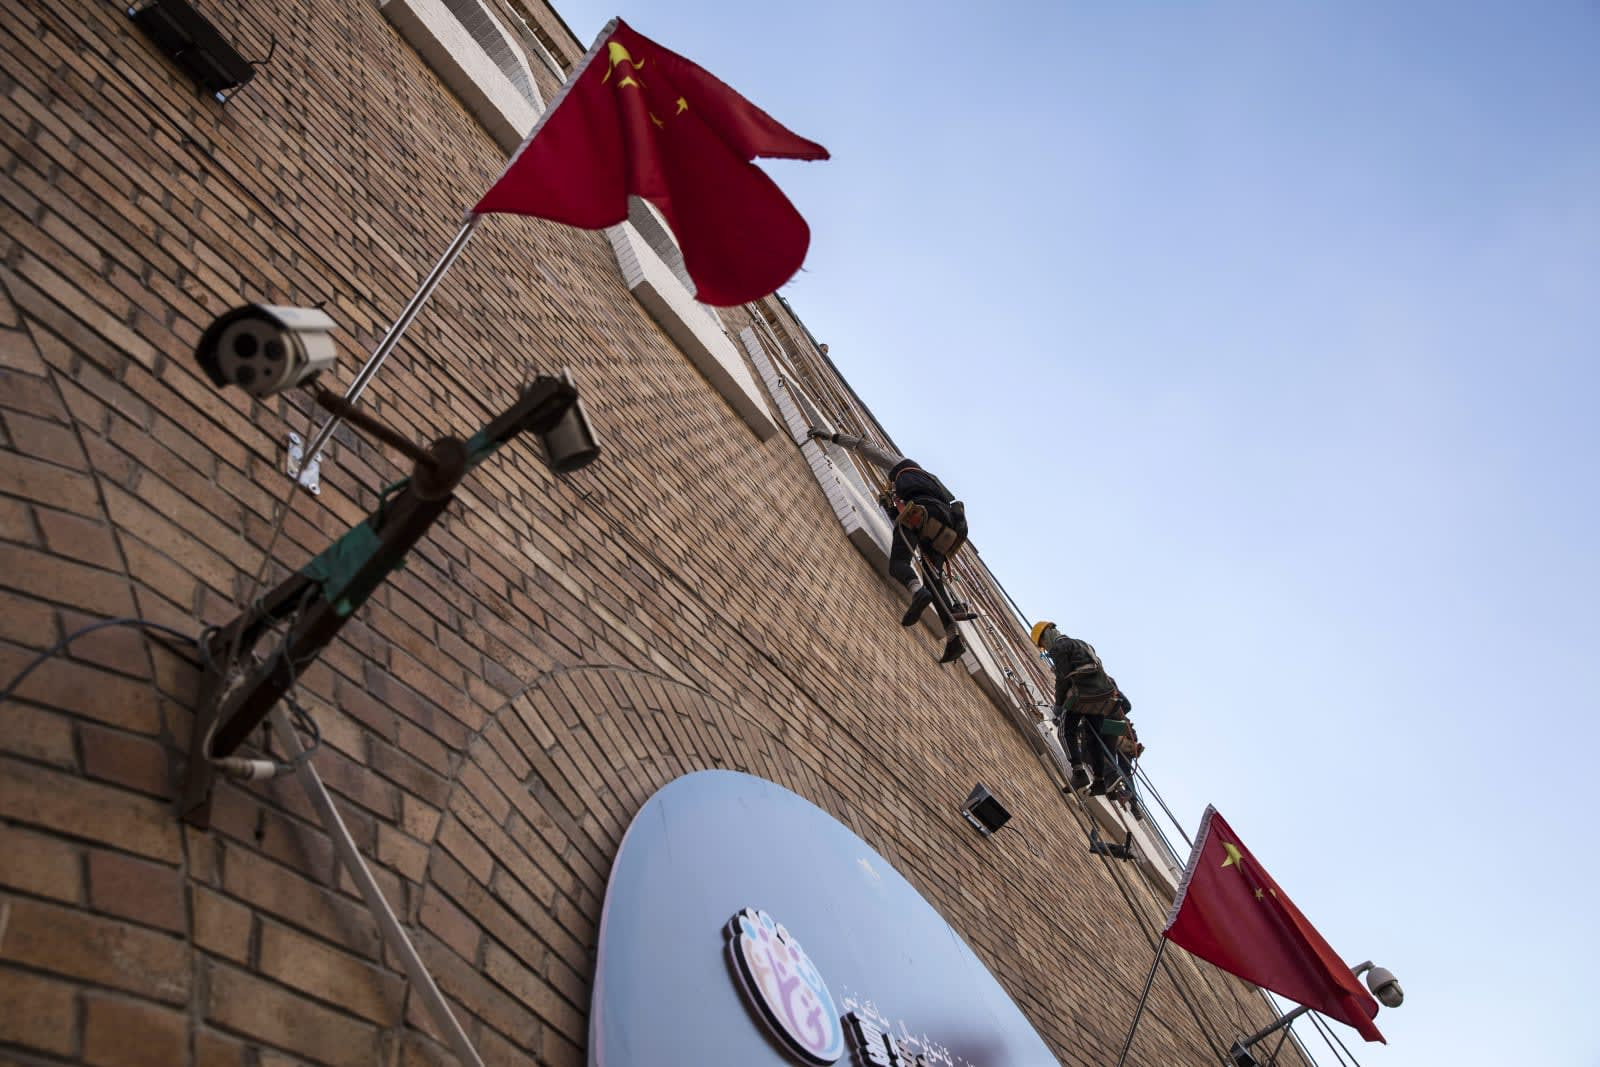 Chinese surveillance company found tracking 2.5 million people